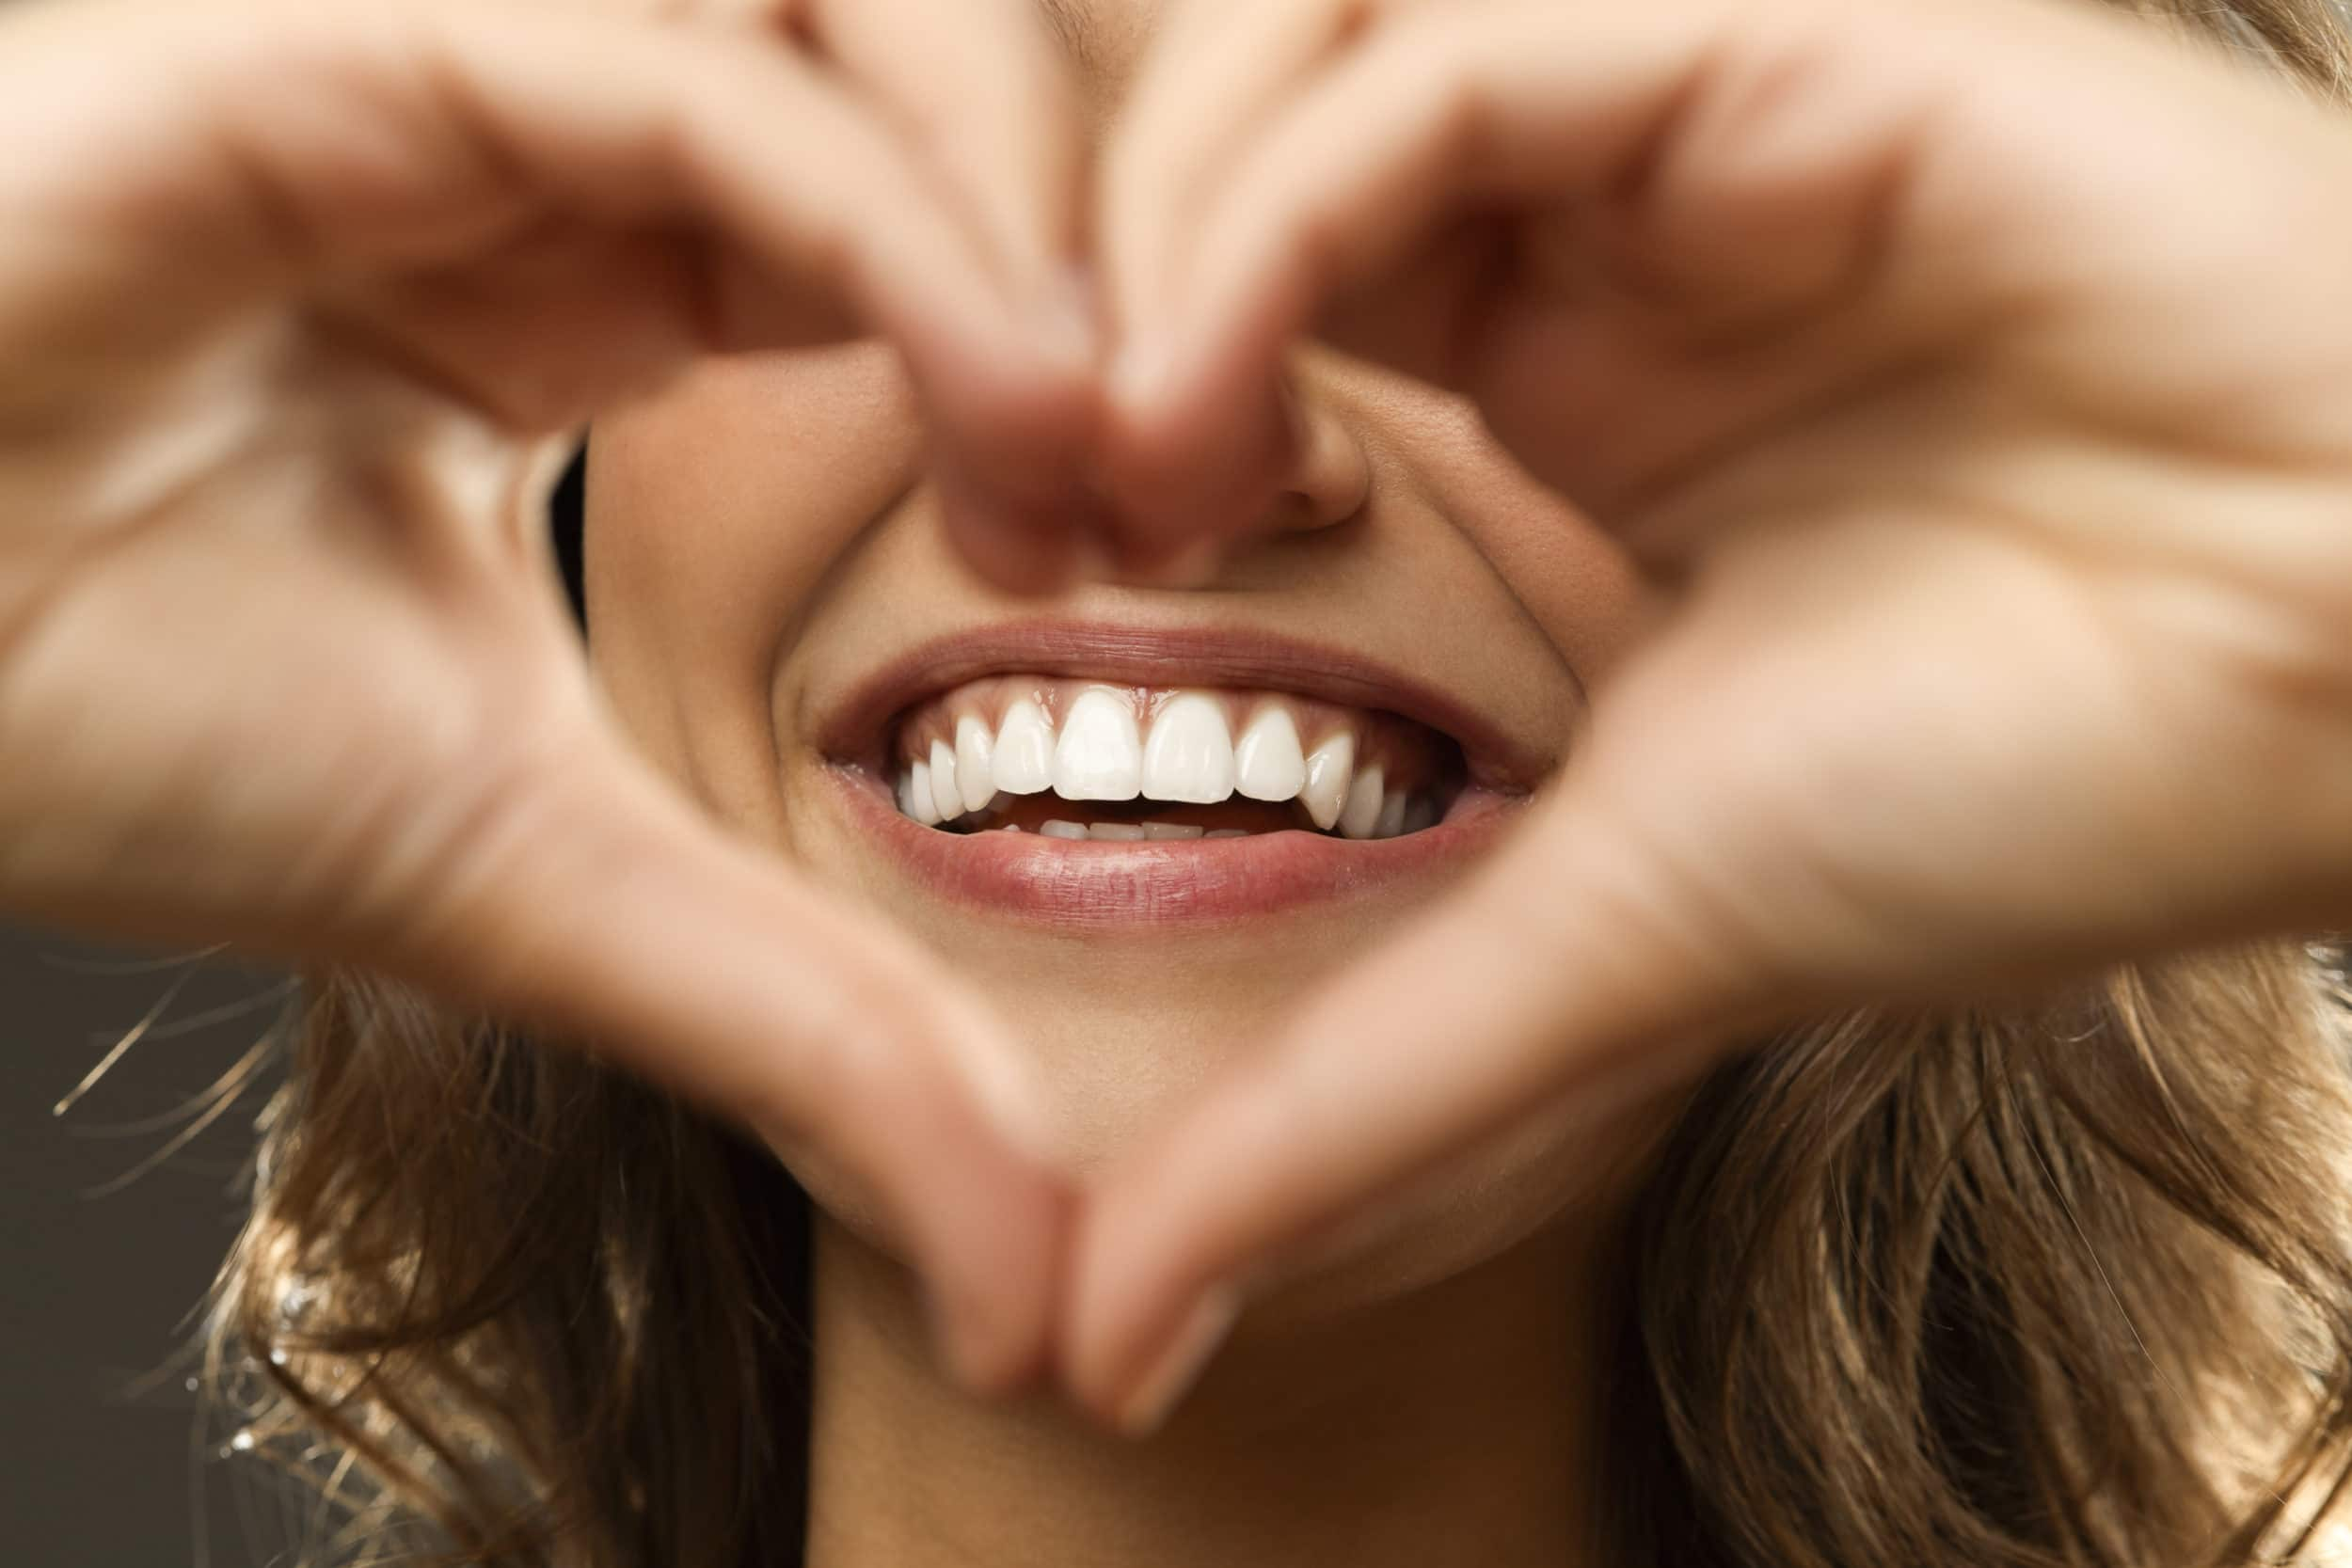 Woman smiling with hands gesturing a heart